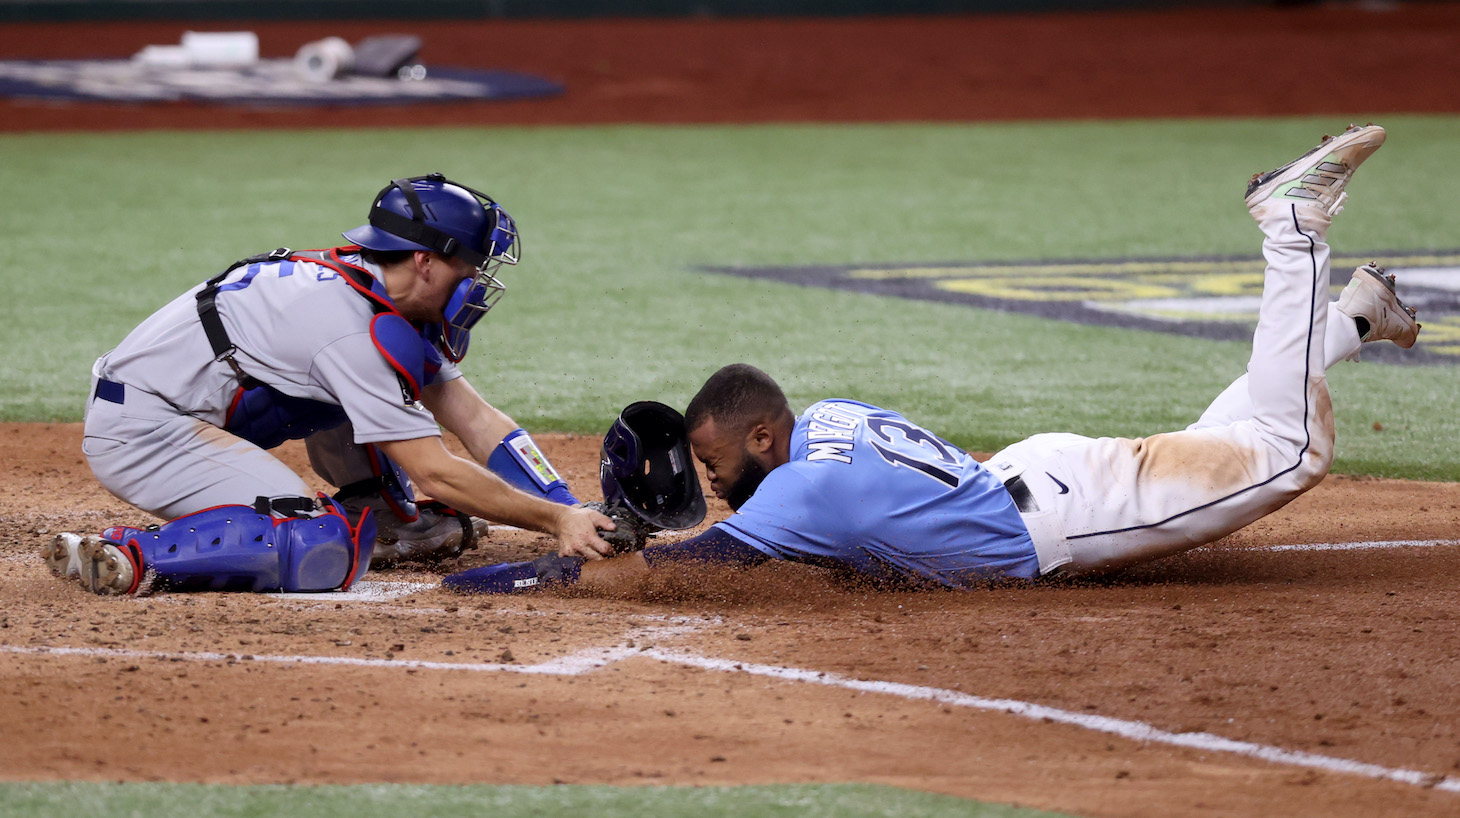 ARLINGTON, TEXAS - OCTOBER 25: Manuel Margot #13 of the Tampa Bay Rays is tagged out by Austin Barnes #15 of the Los Angeles Dodgers on an attempt to steal home during the fourth inning in Game Five of the 2020 MLB World Series at Globe Life Field on October 25, 2020 in Arlington, Texas. (Photo by Tom Pennington/Getty Images)